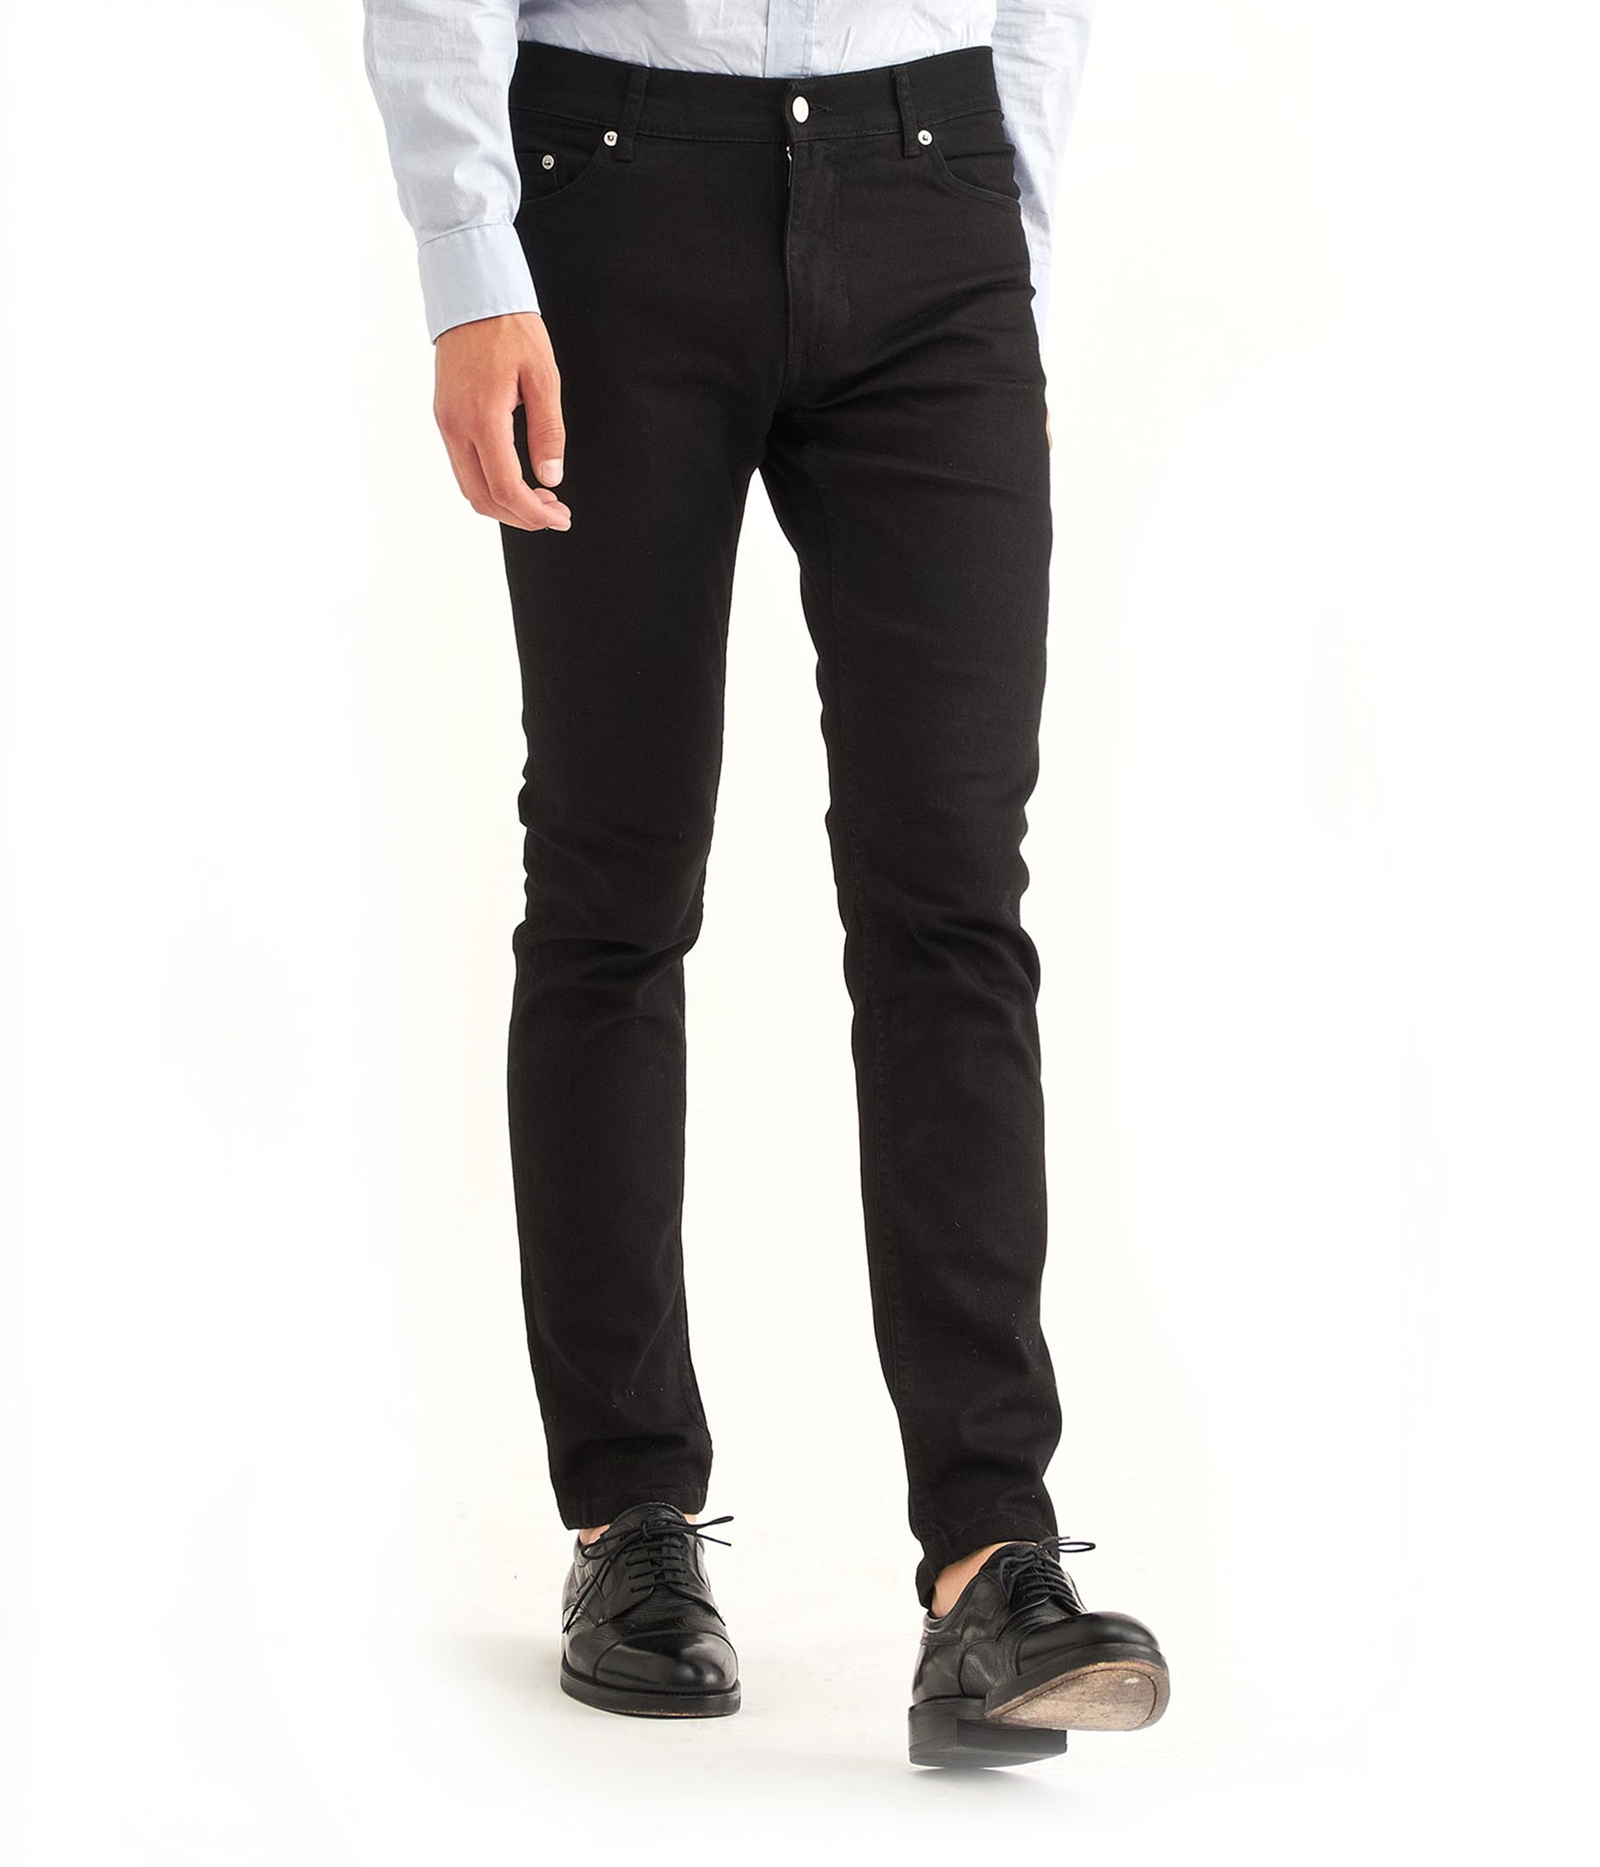 VBN_julian_jeans_stay_black_3312101265_3-1800x2100